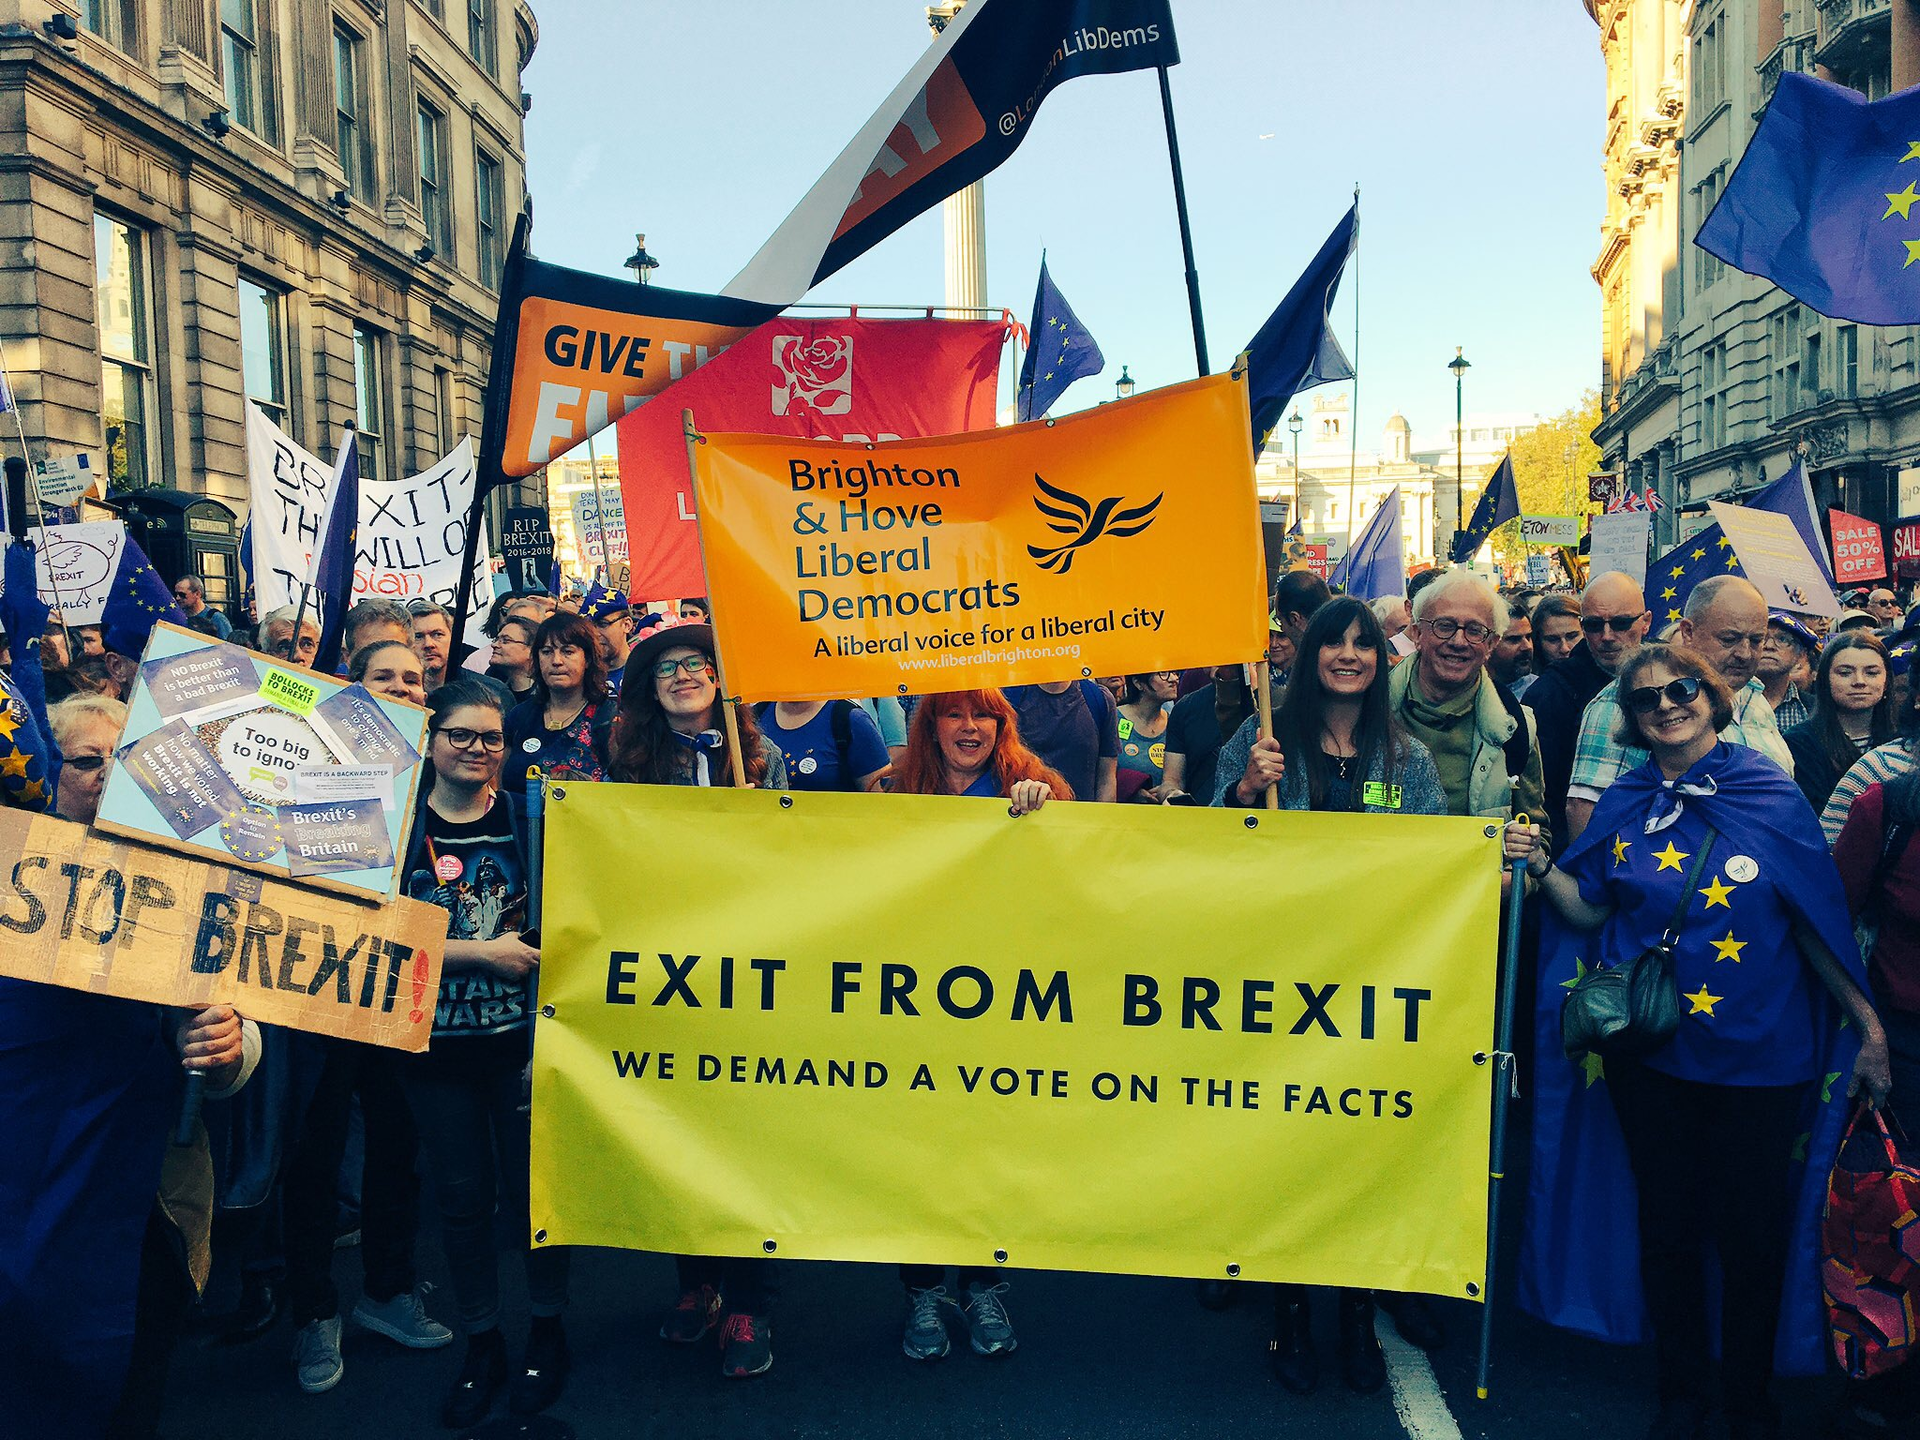 B&H Lib Dems at People's Vote march Oct 20th